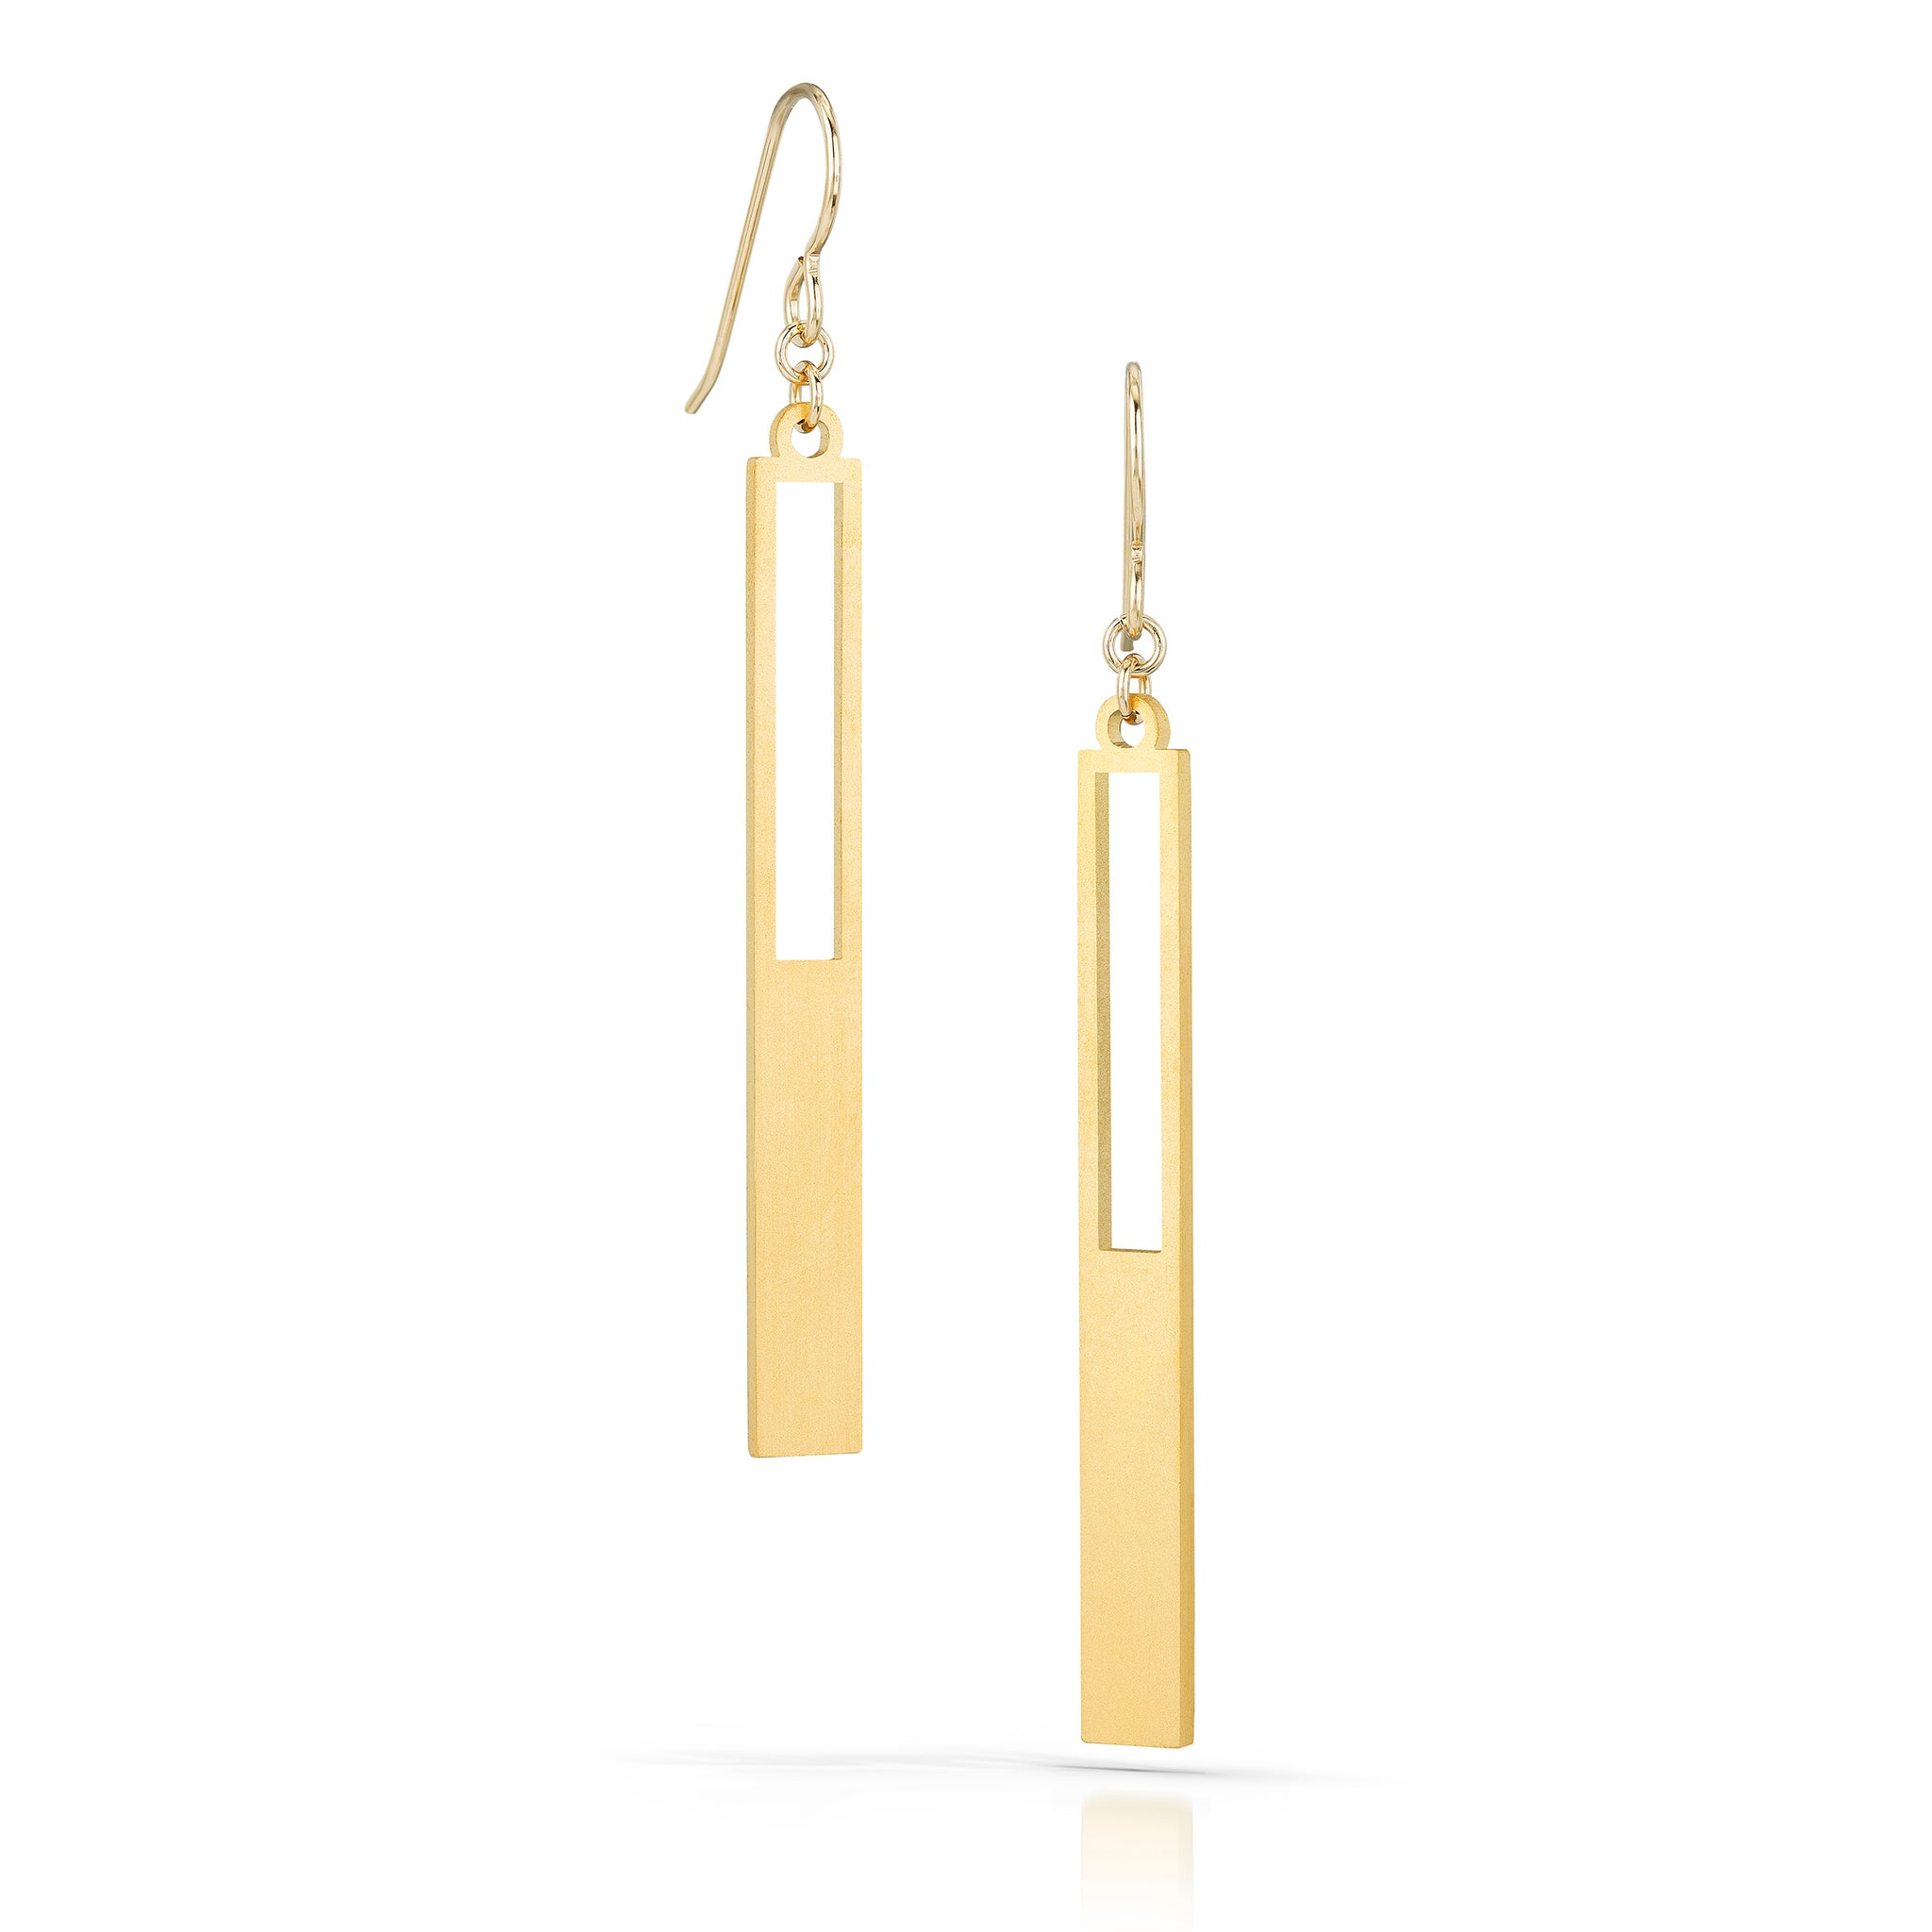 anni earrings, 18k gold-plated